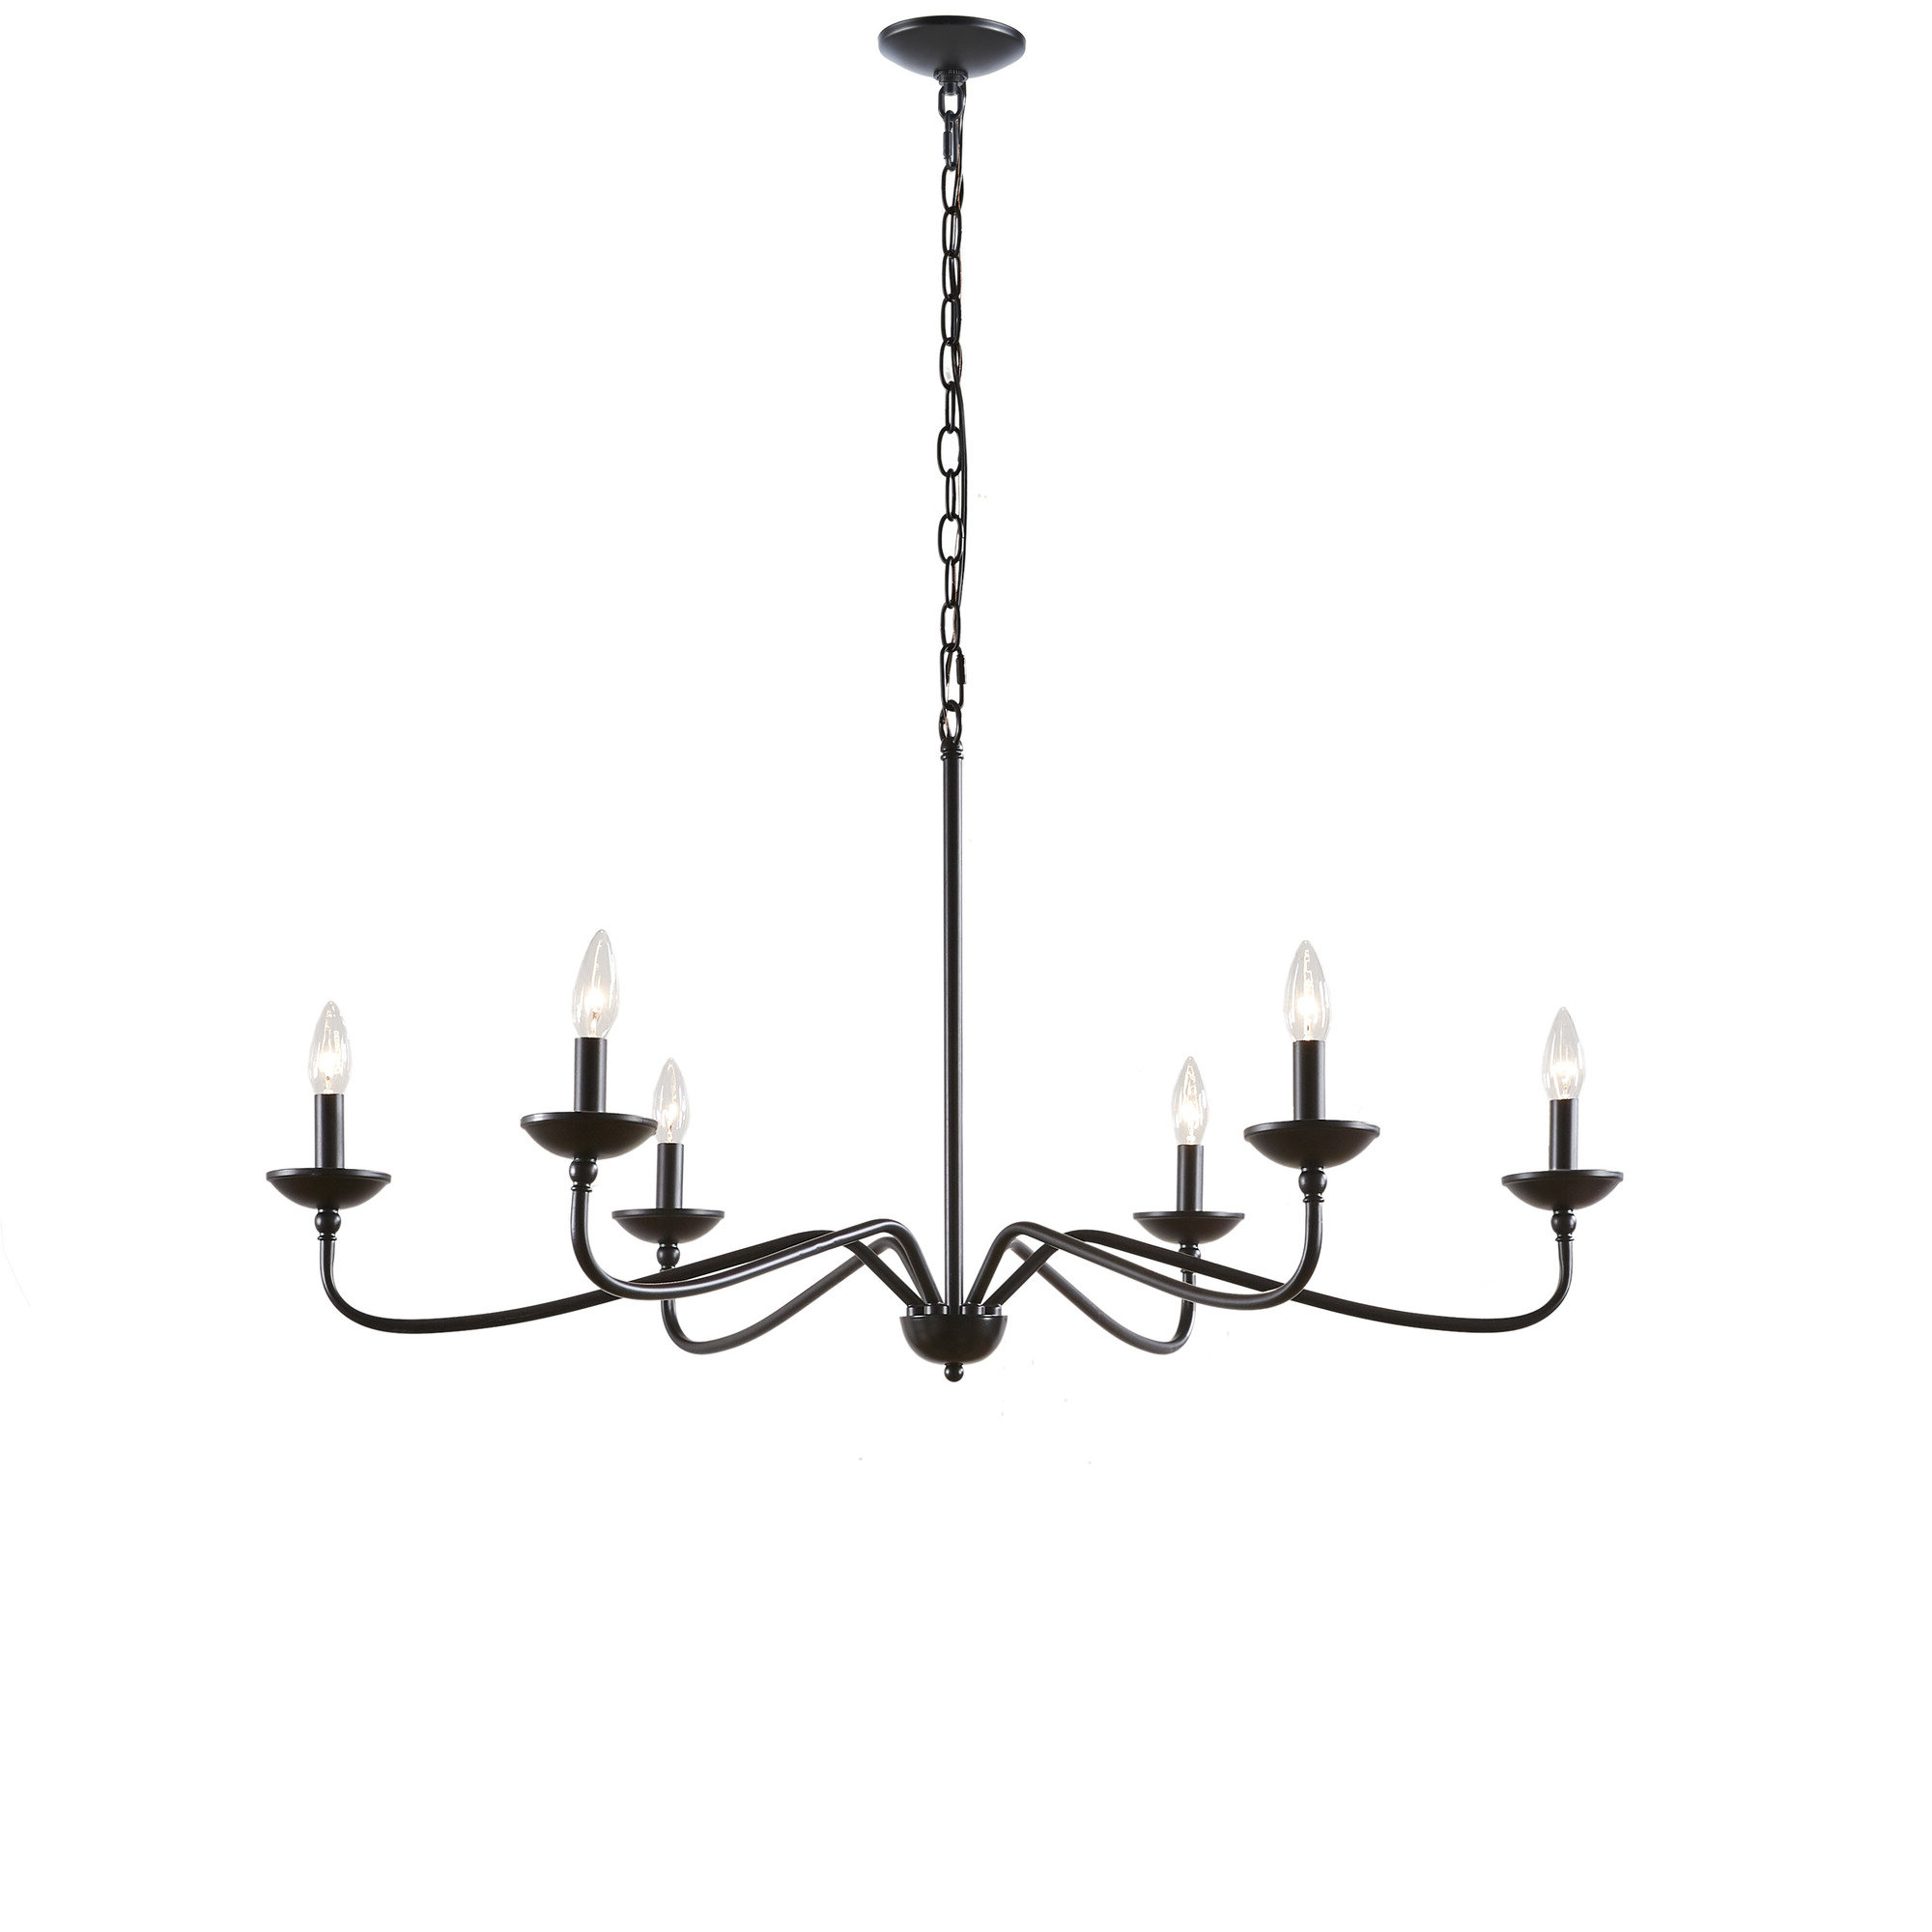 Hamza 6 Light Candle Style Chandeliers For Most Up To Date Scannell 6 Light Candle Style Chandelier (View 7 of 20)